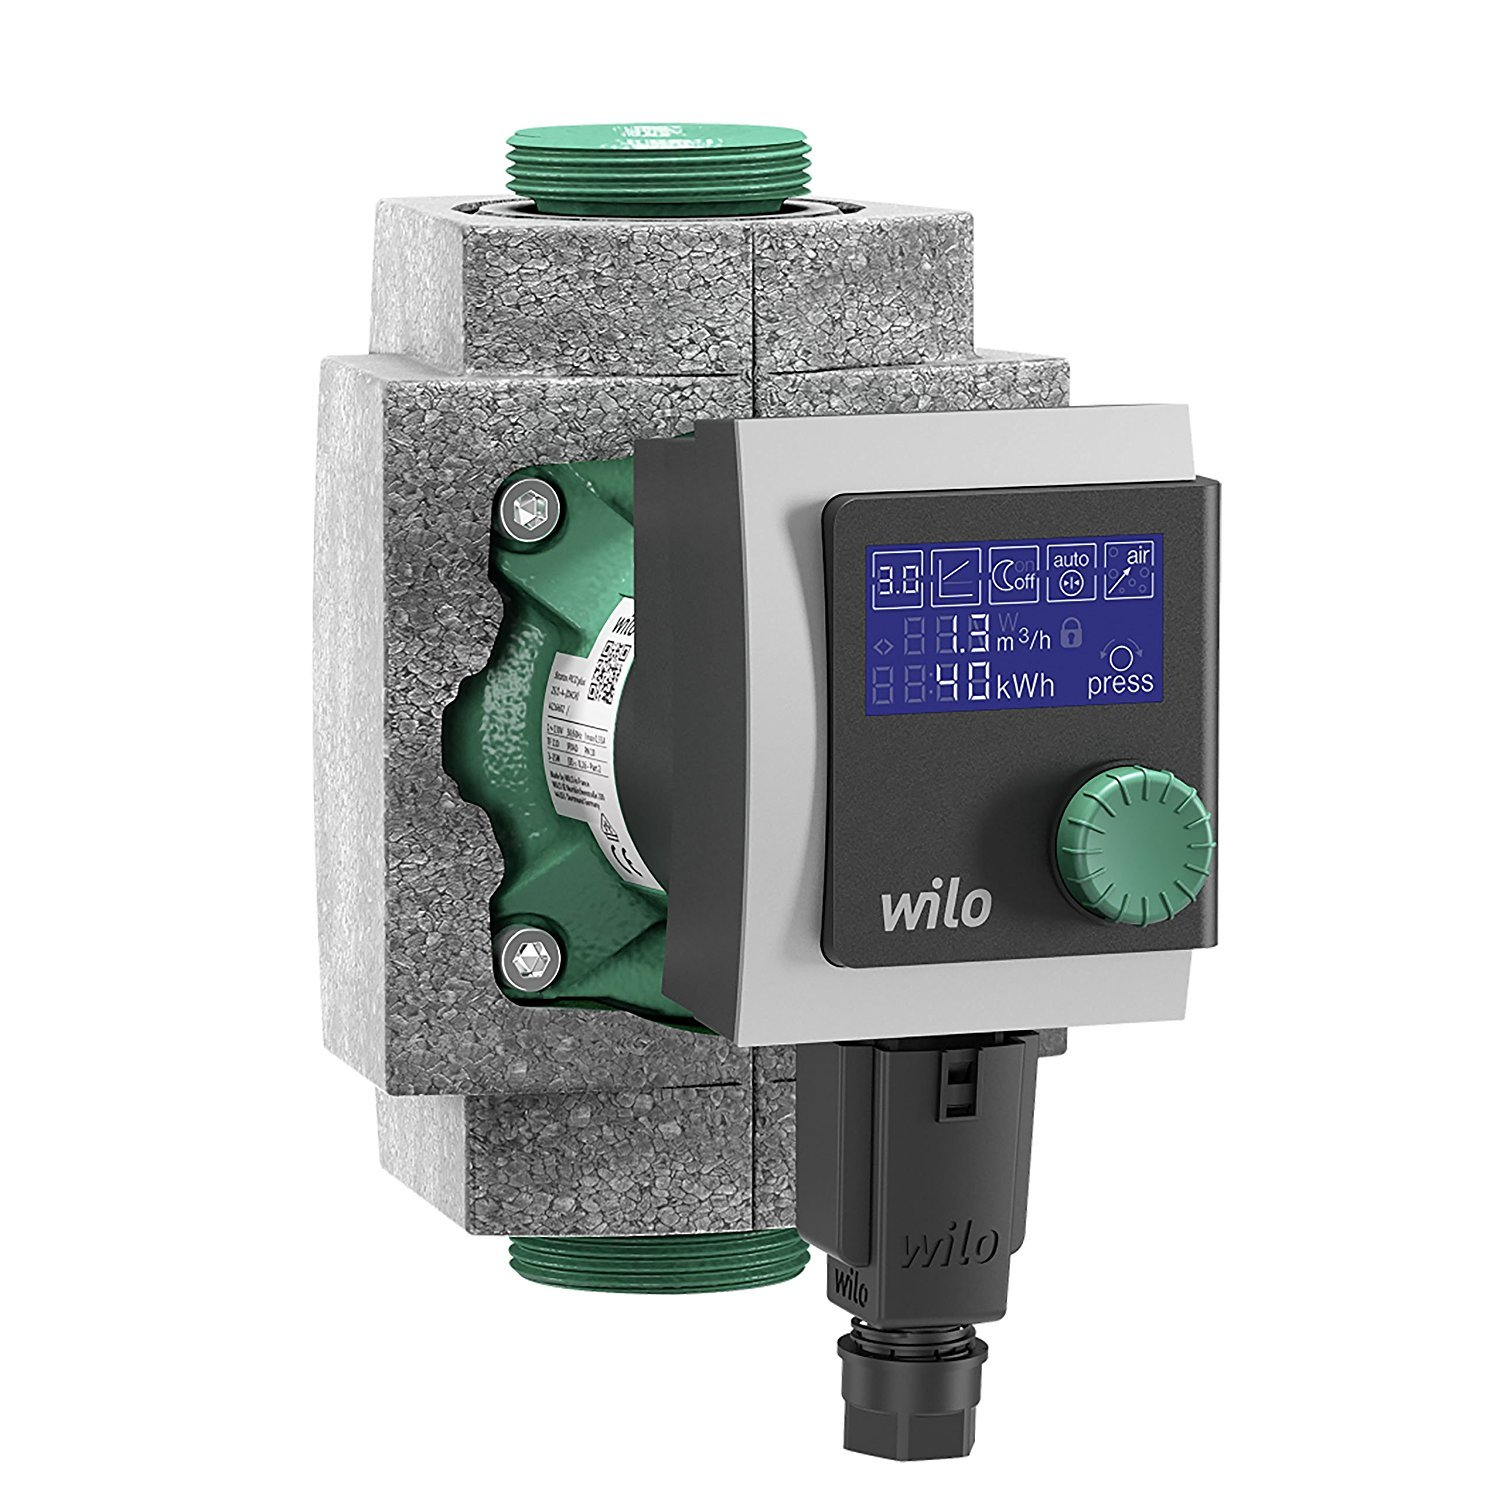 Wilo high-efficiency pump Stratos Pico 25/1-6 180mm with thermal insulation